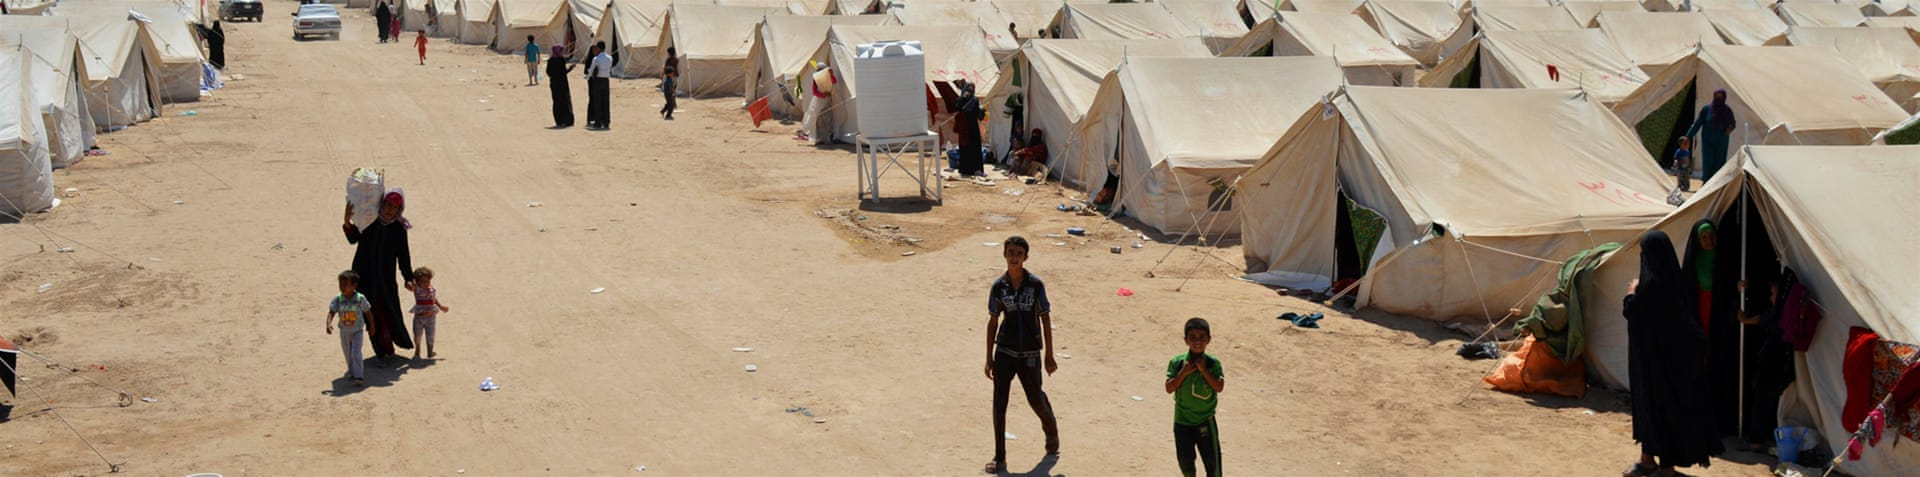 More than 20,000 people have fled Fallujah in the past two days alone, the UN says [Reuters]